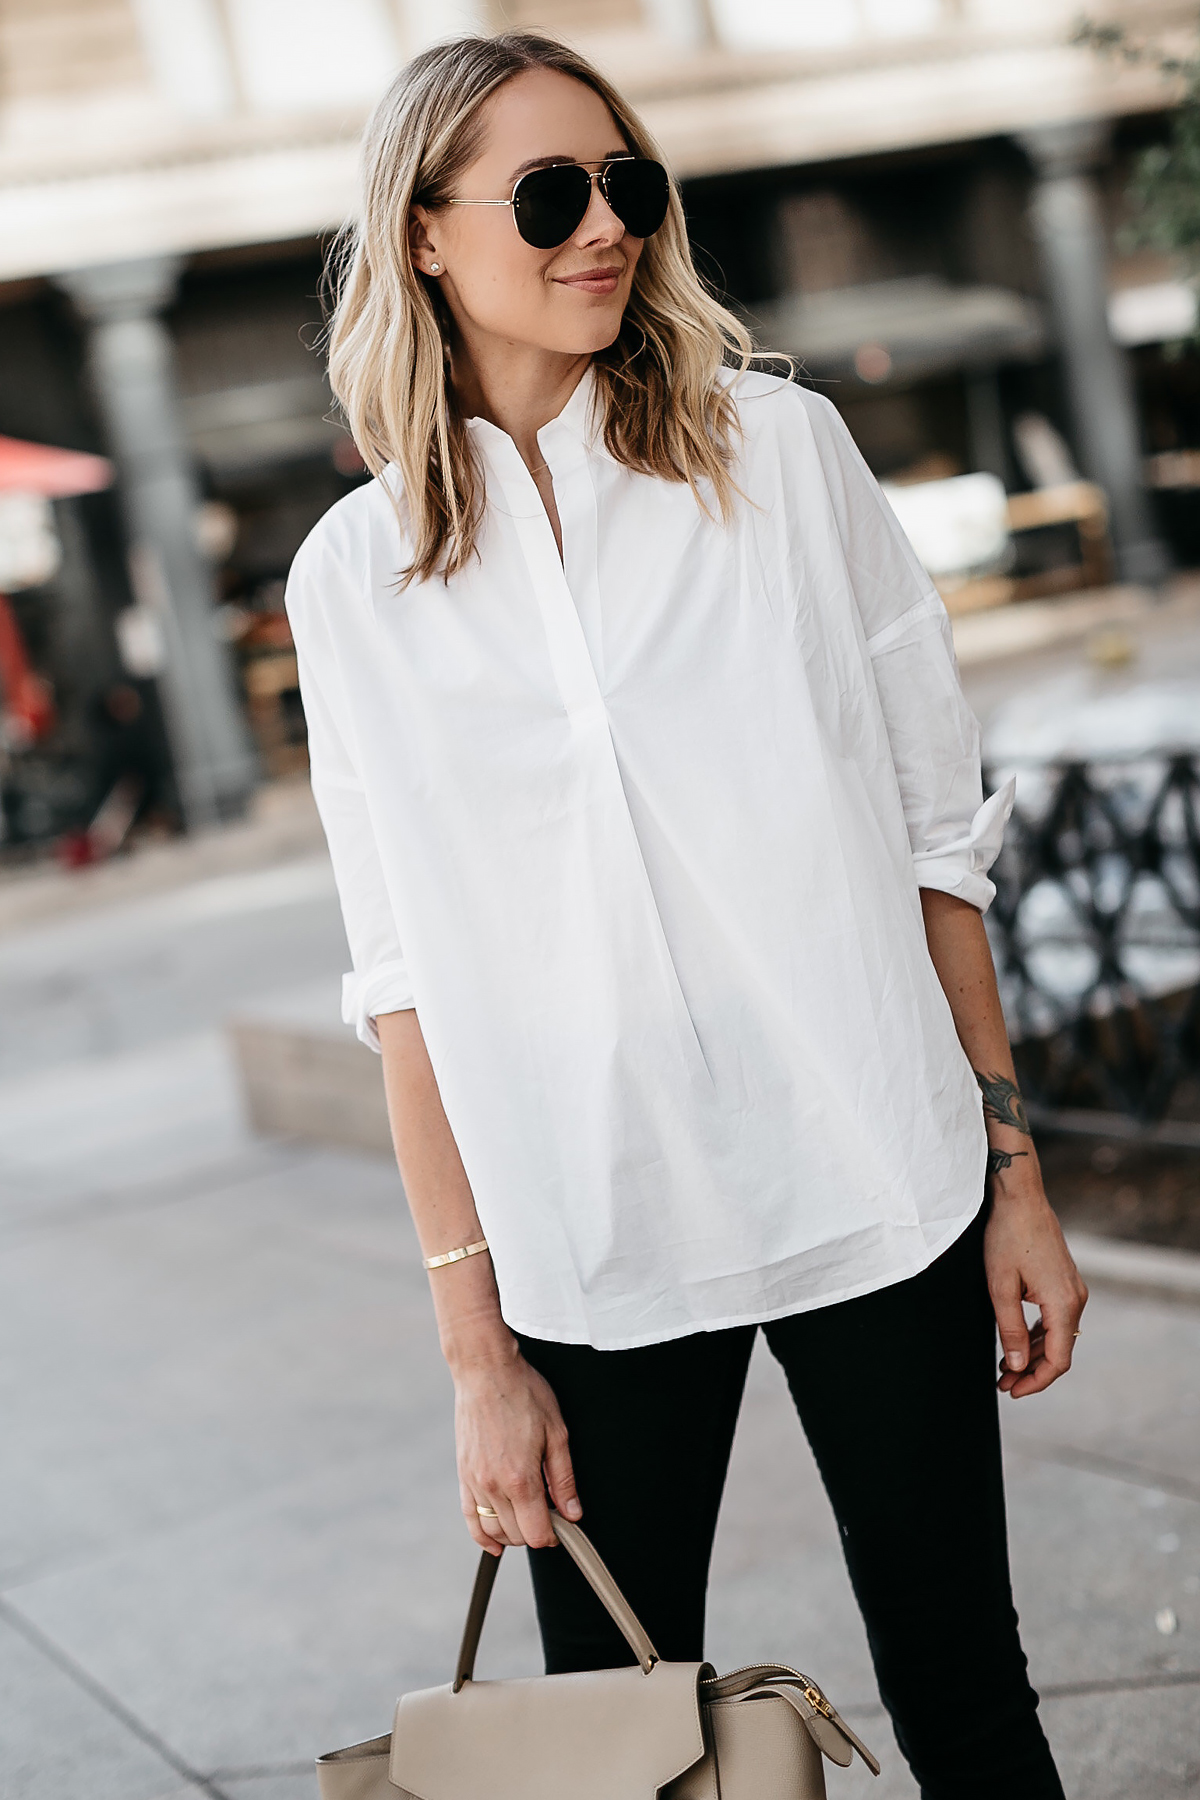 Blonde Woman Wearing French Connection White Collared Shirt Celine Aviator Sunglasses Fashion Jackson Dallas Blogger Fashion Blogger Street Style